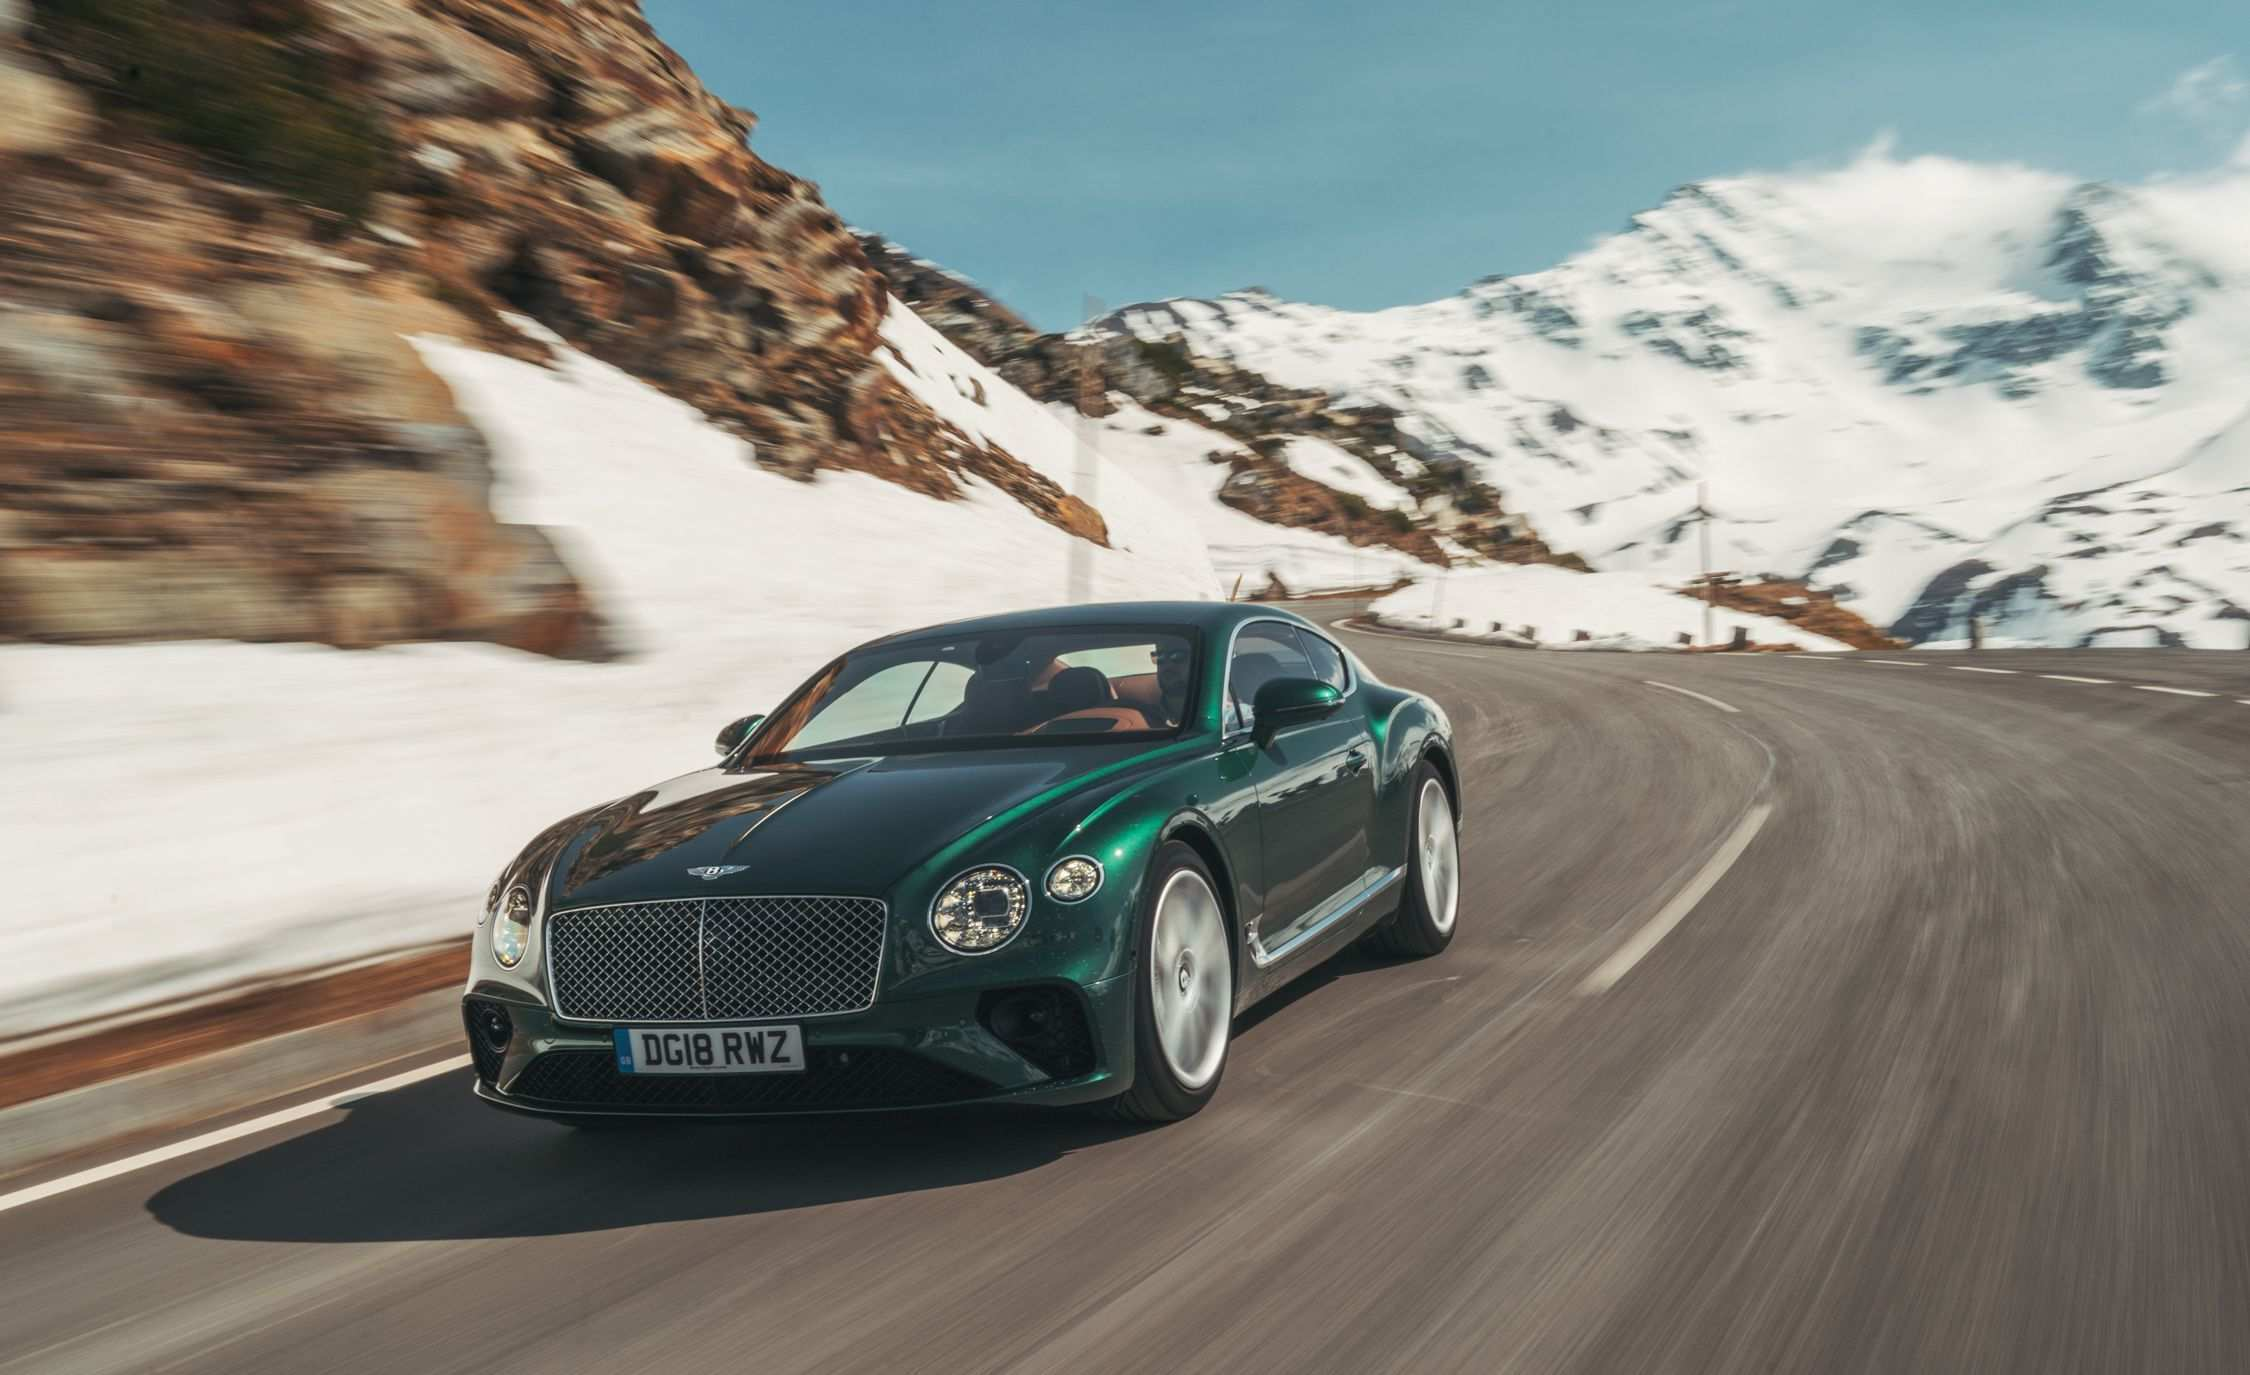 76 Concept of 2019 Bentley Gt V8 Spesification with 2019 Bentley Gt V8